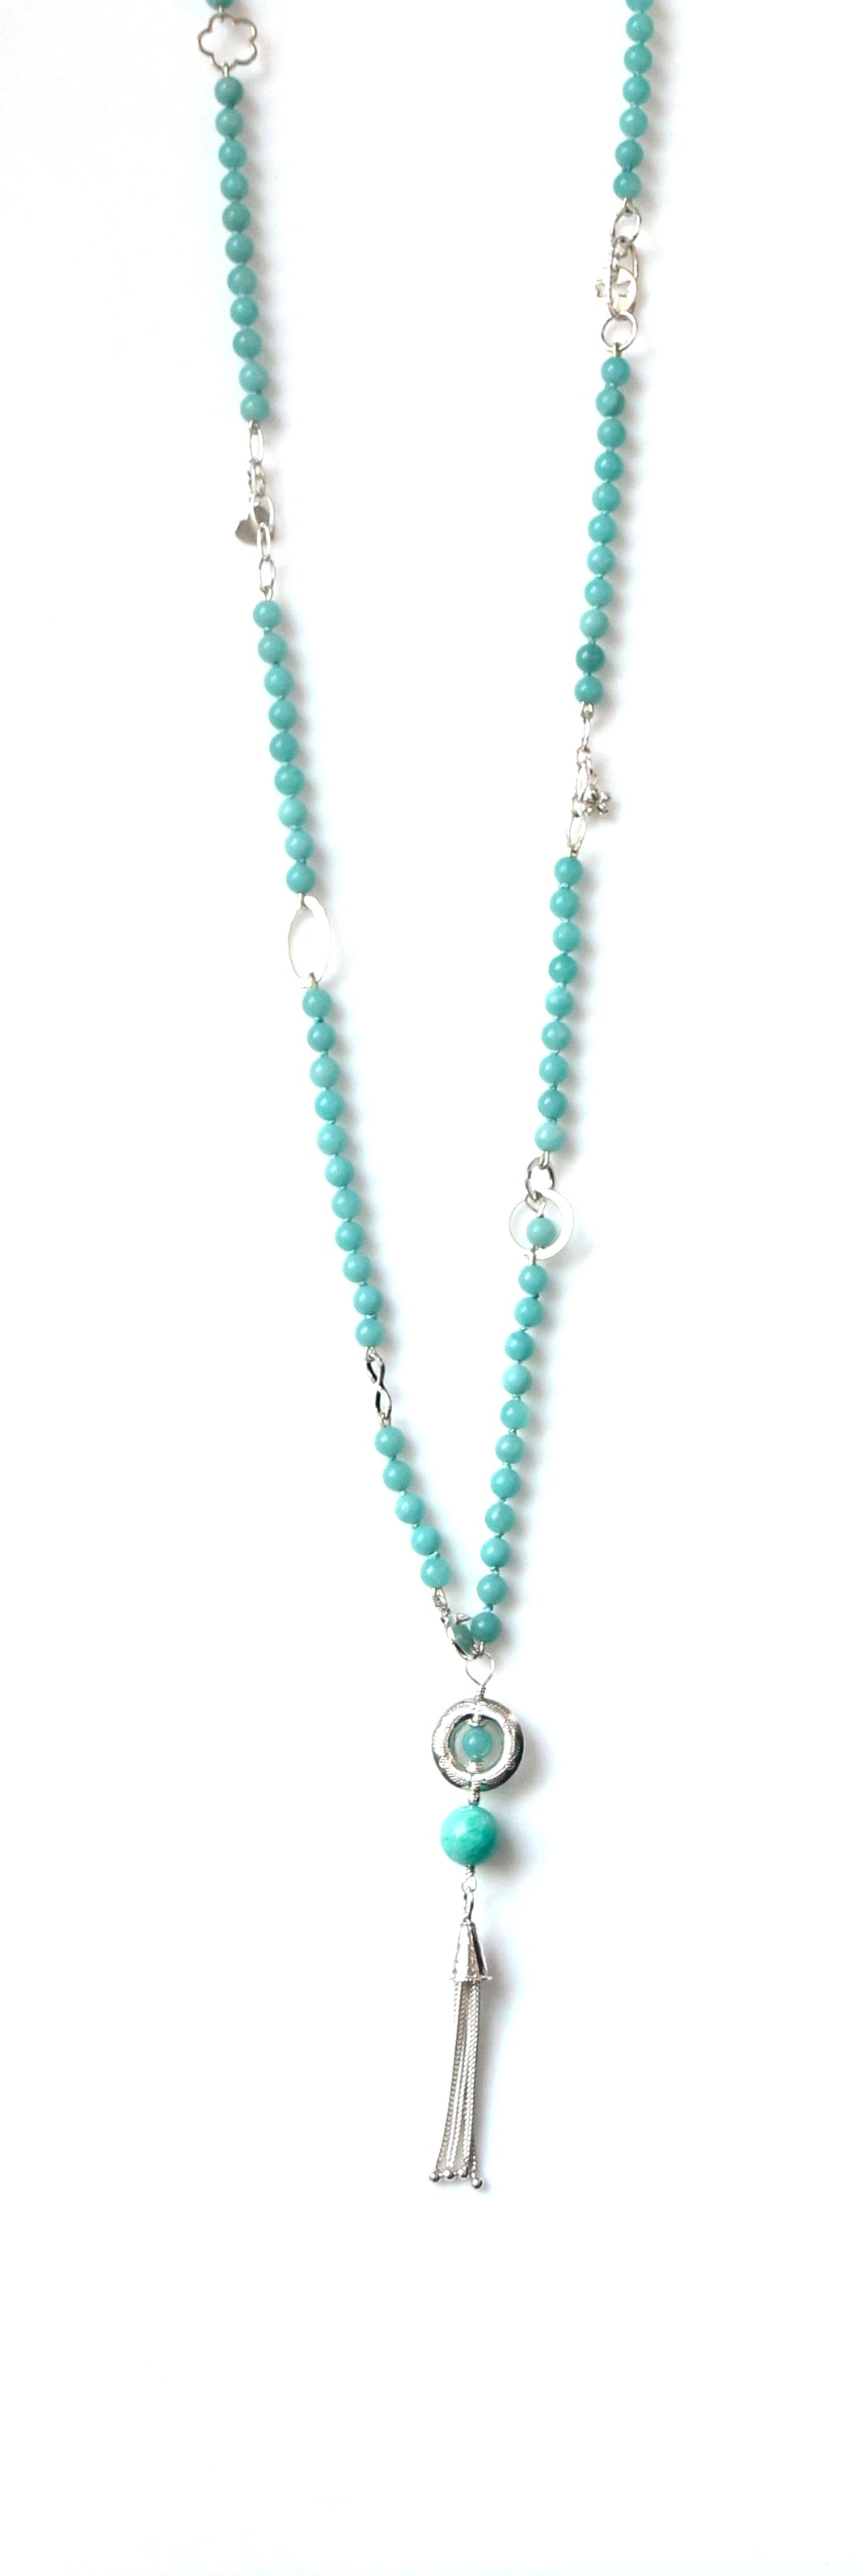 Australian Handmade Long Necklace with Amazonite and Sterling Silver